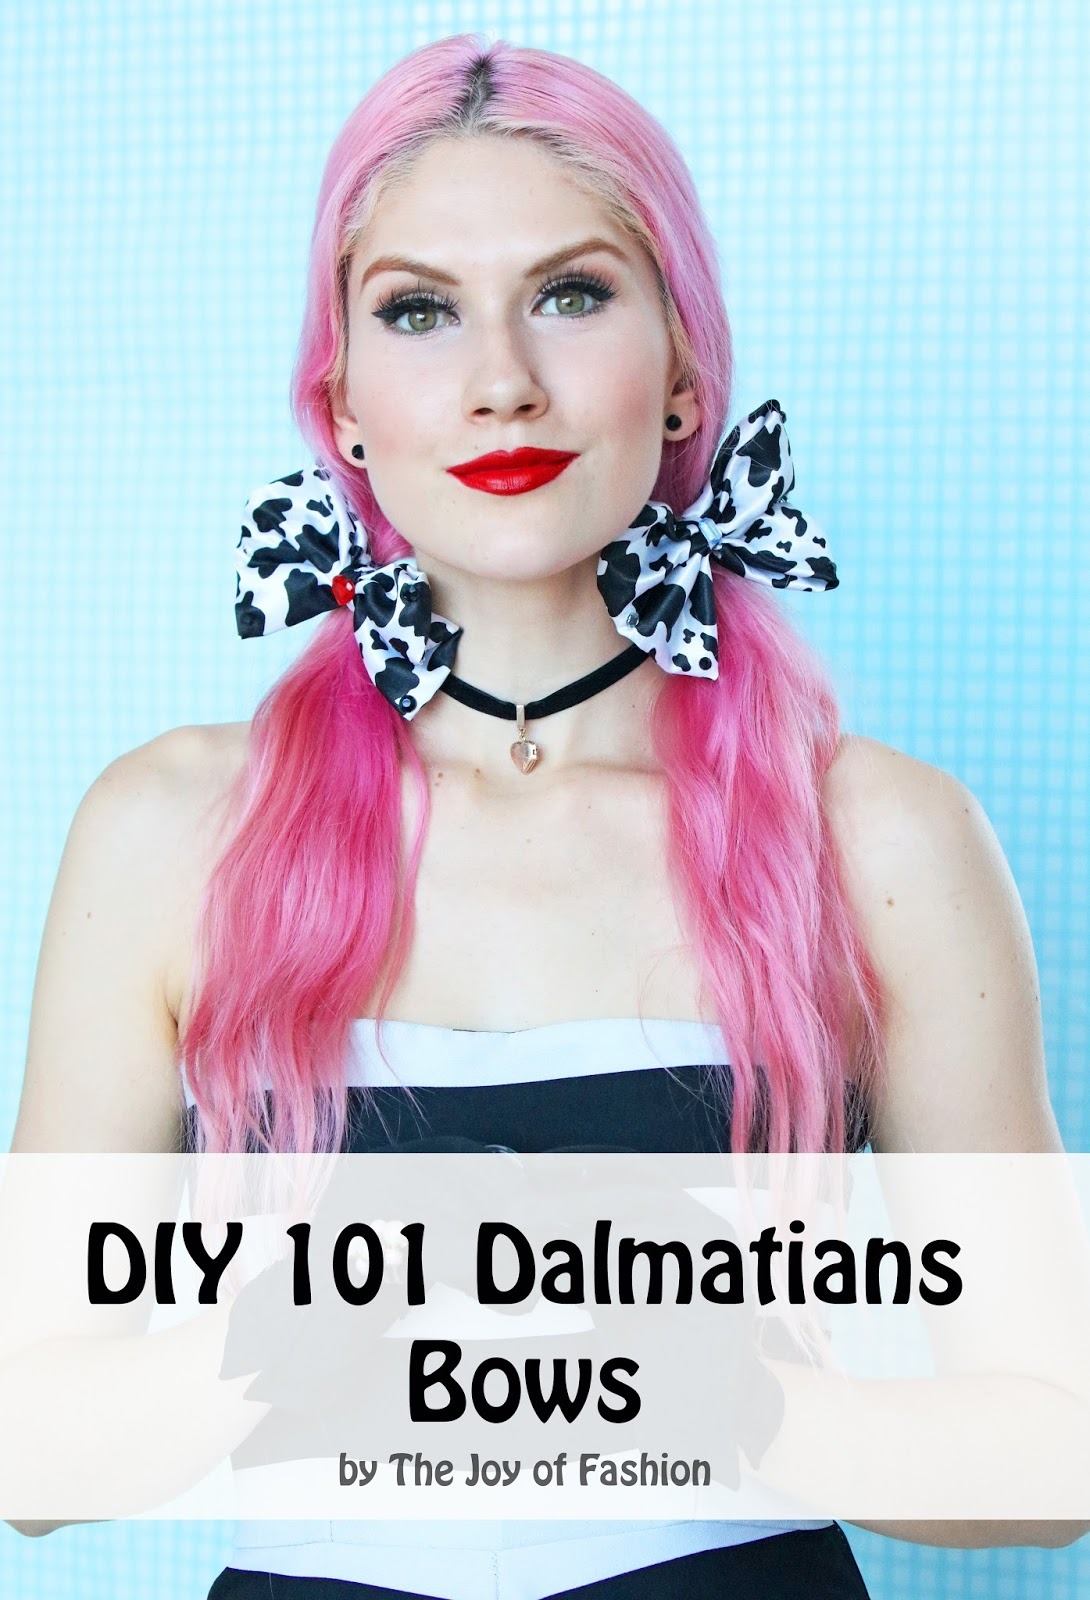 DIY 101 Dalmatians Hair Bows